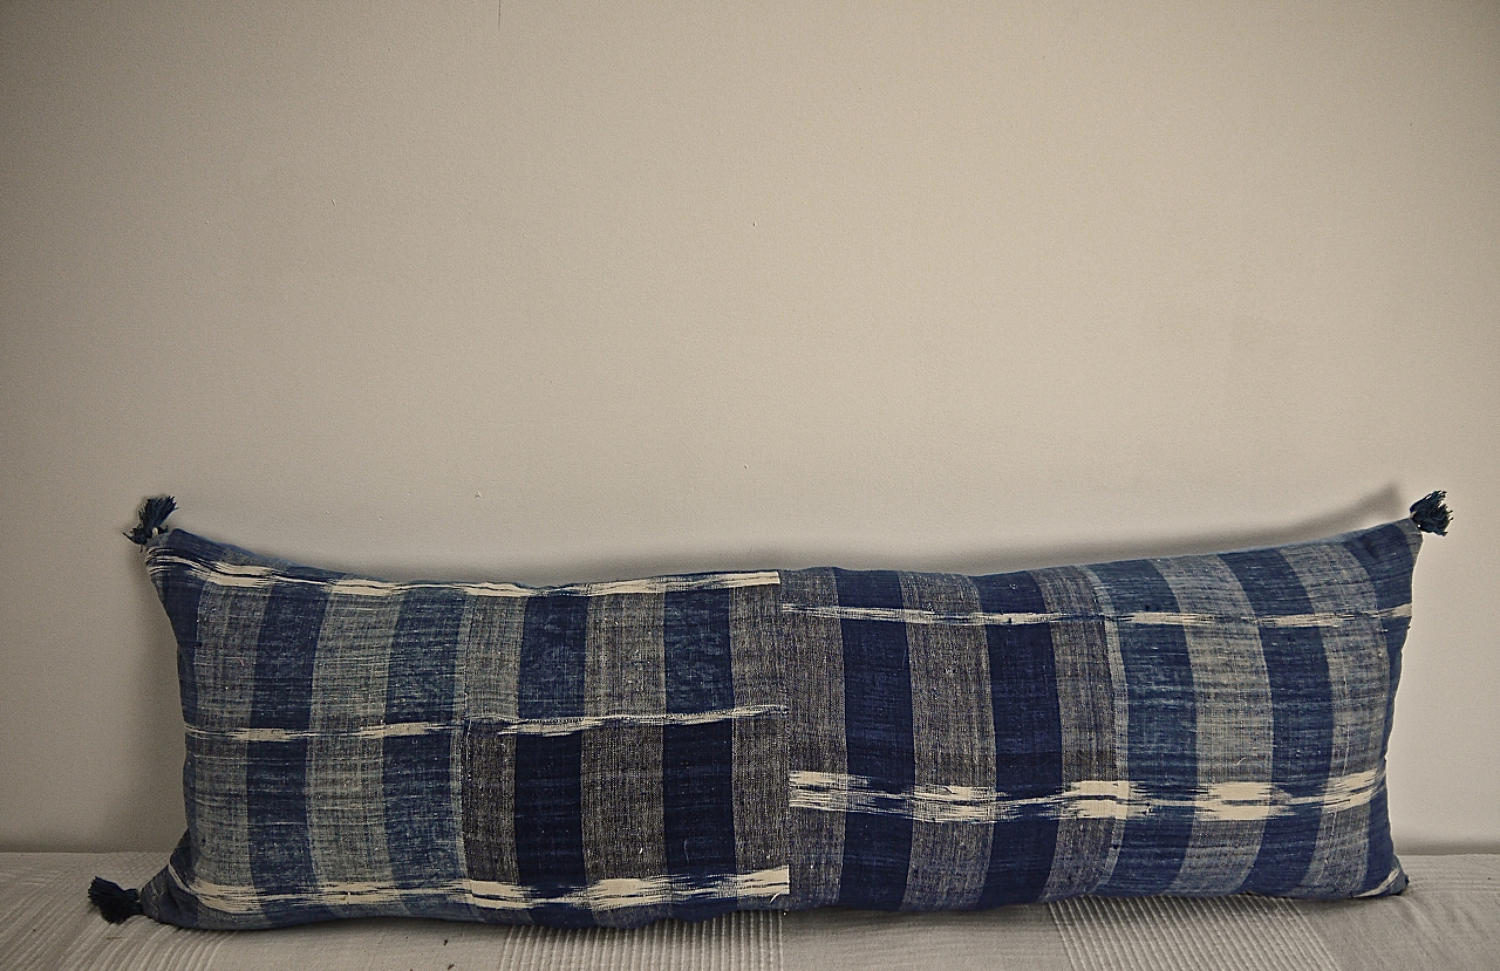 Early 19th century French indigo flamme/ikat cushion